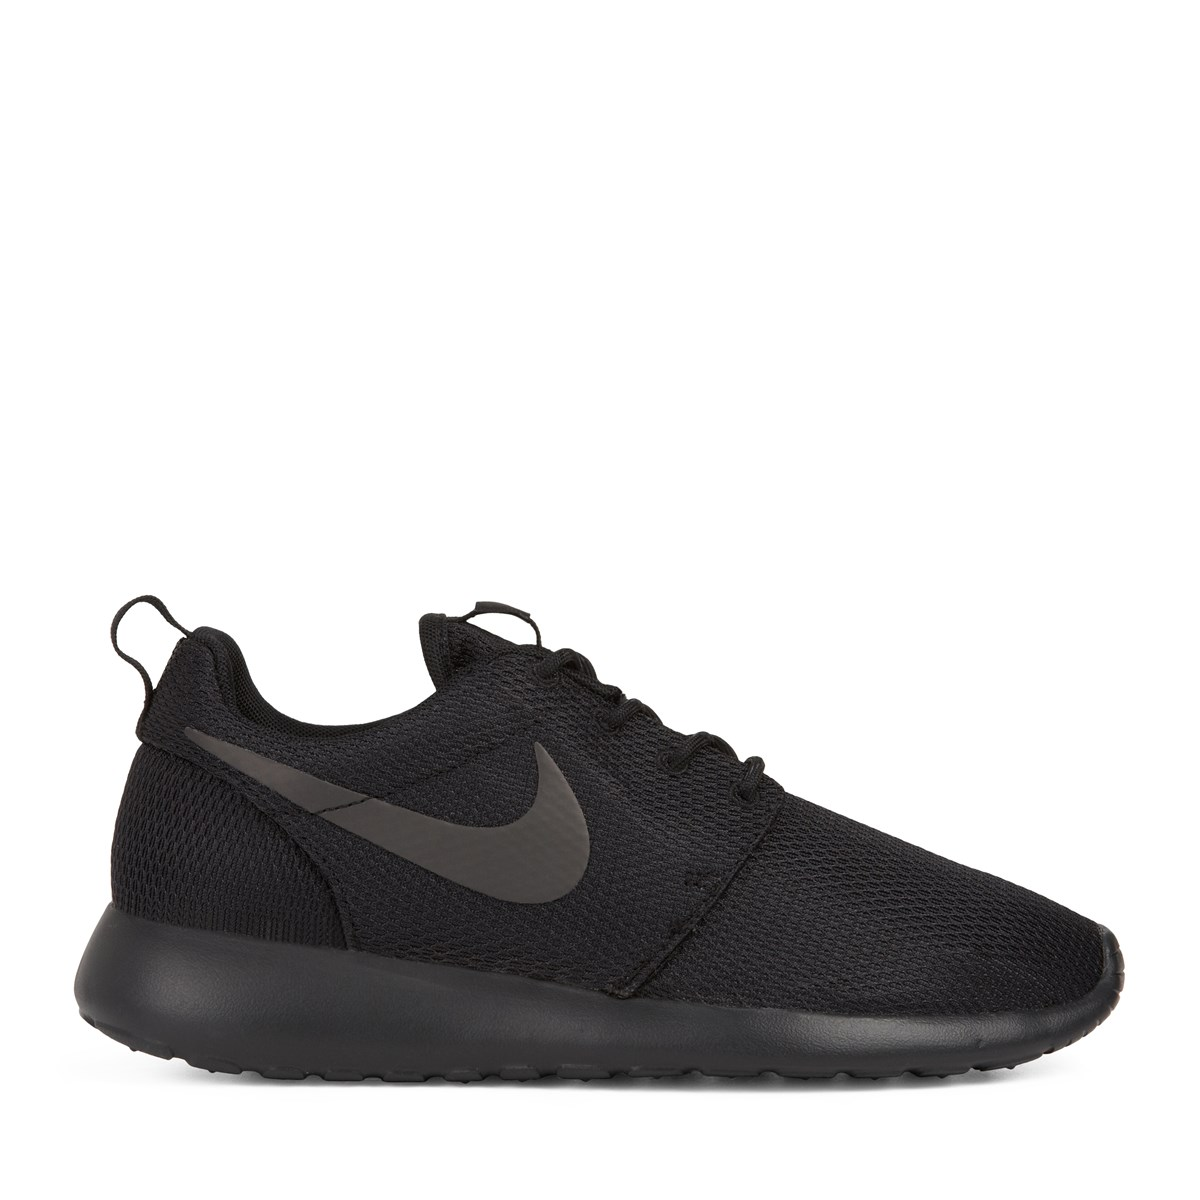 c1ff8cb3f616 Women s Roshe One All Black Sneaker. Previous. default view